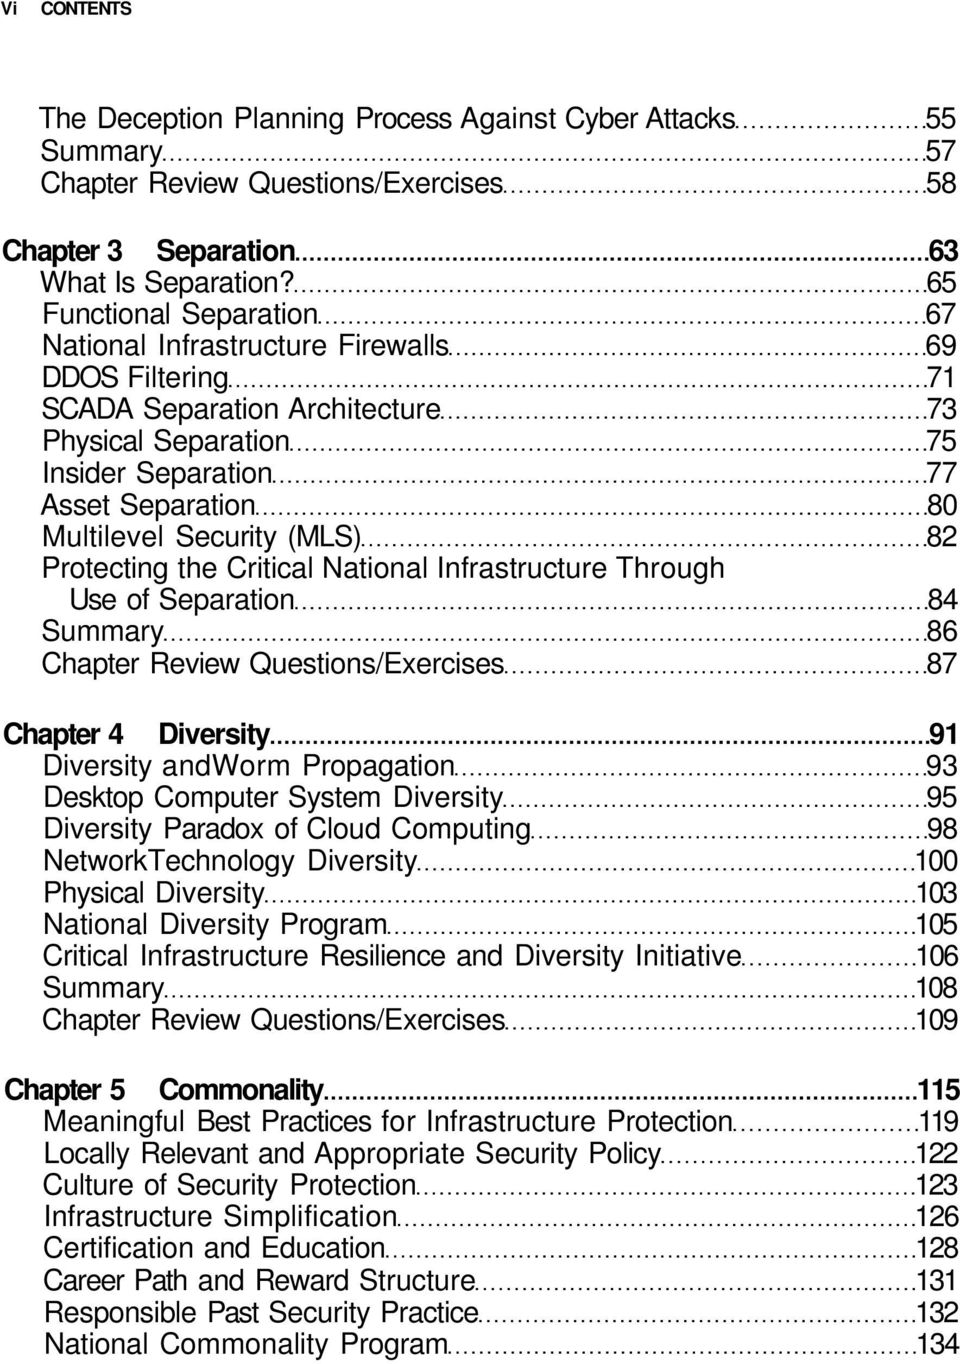 Security (MLS) 82 Protecting the Critical National Infrastructure Through Use of Separation 84 Summary 86 Chapter Review Questions/Exercises 87 Chapter 4 Diversity 91 Diversity andworm Propagation 93